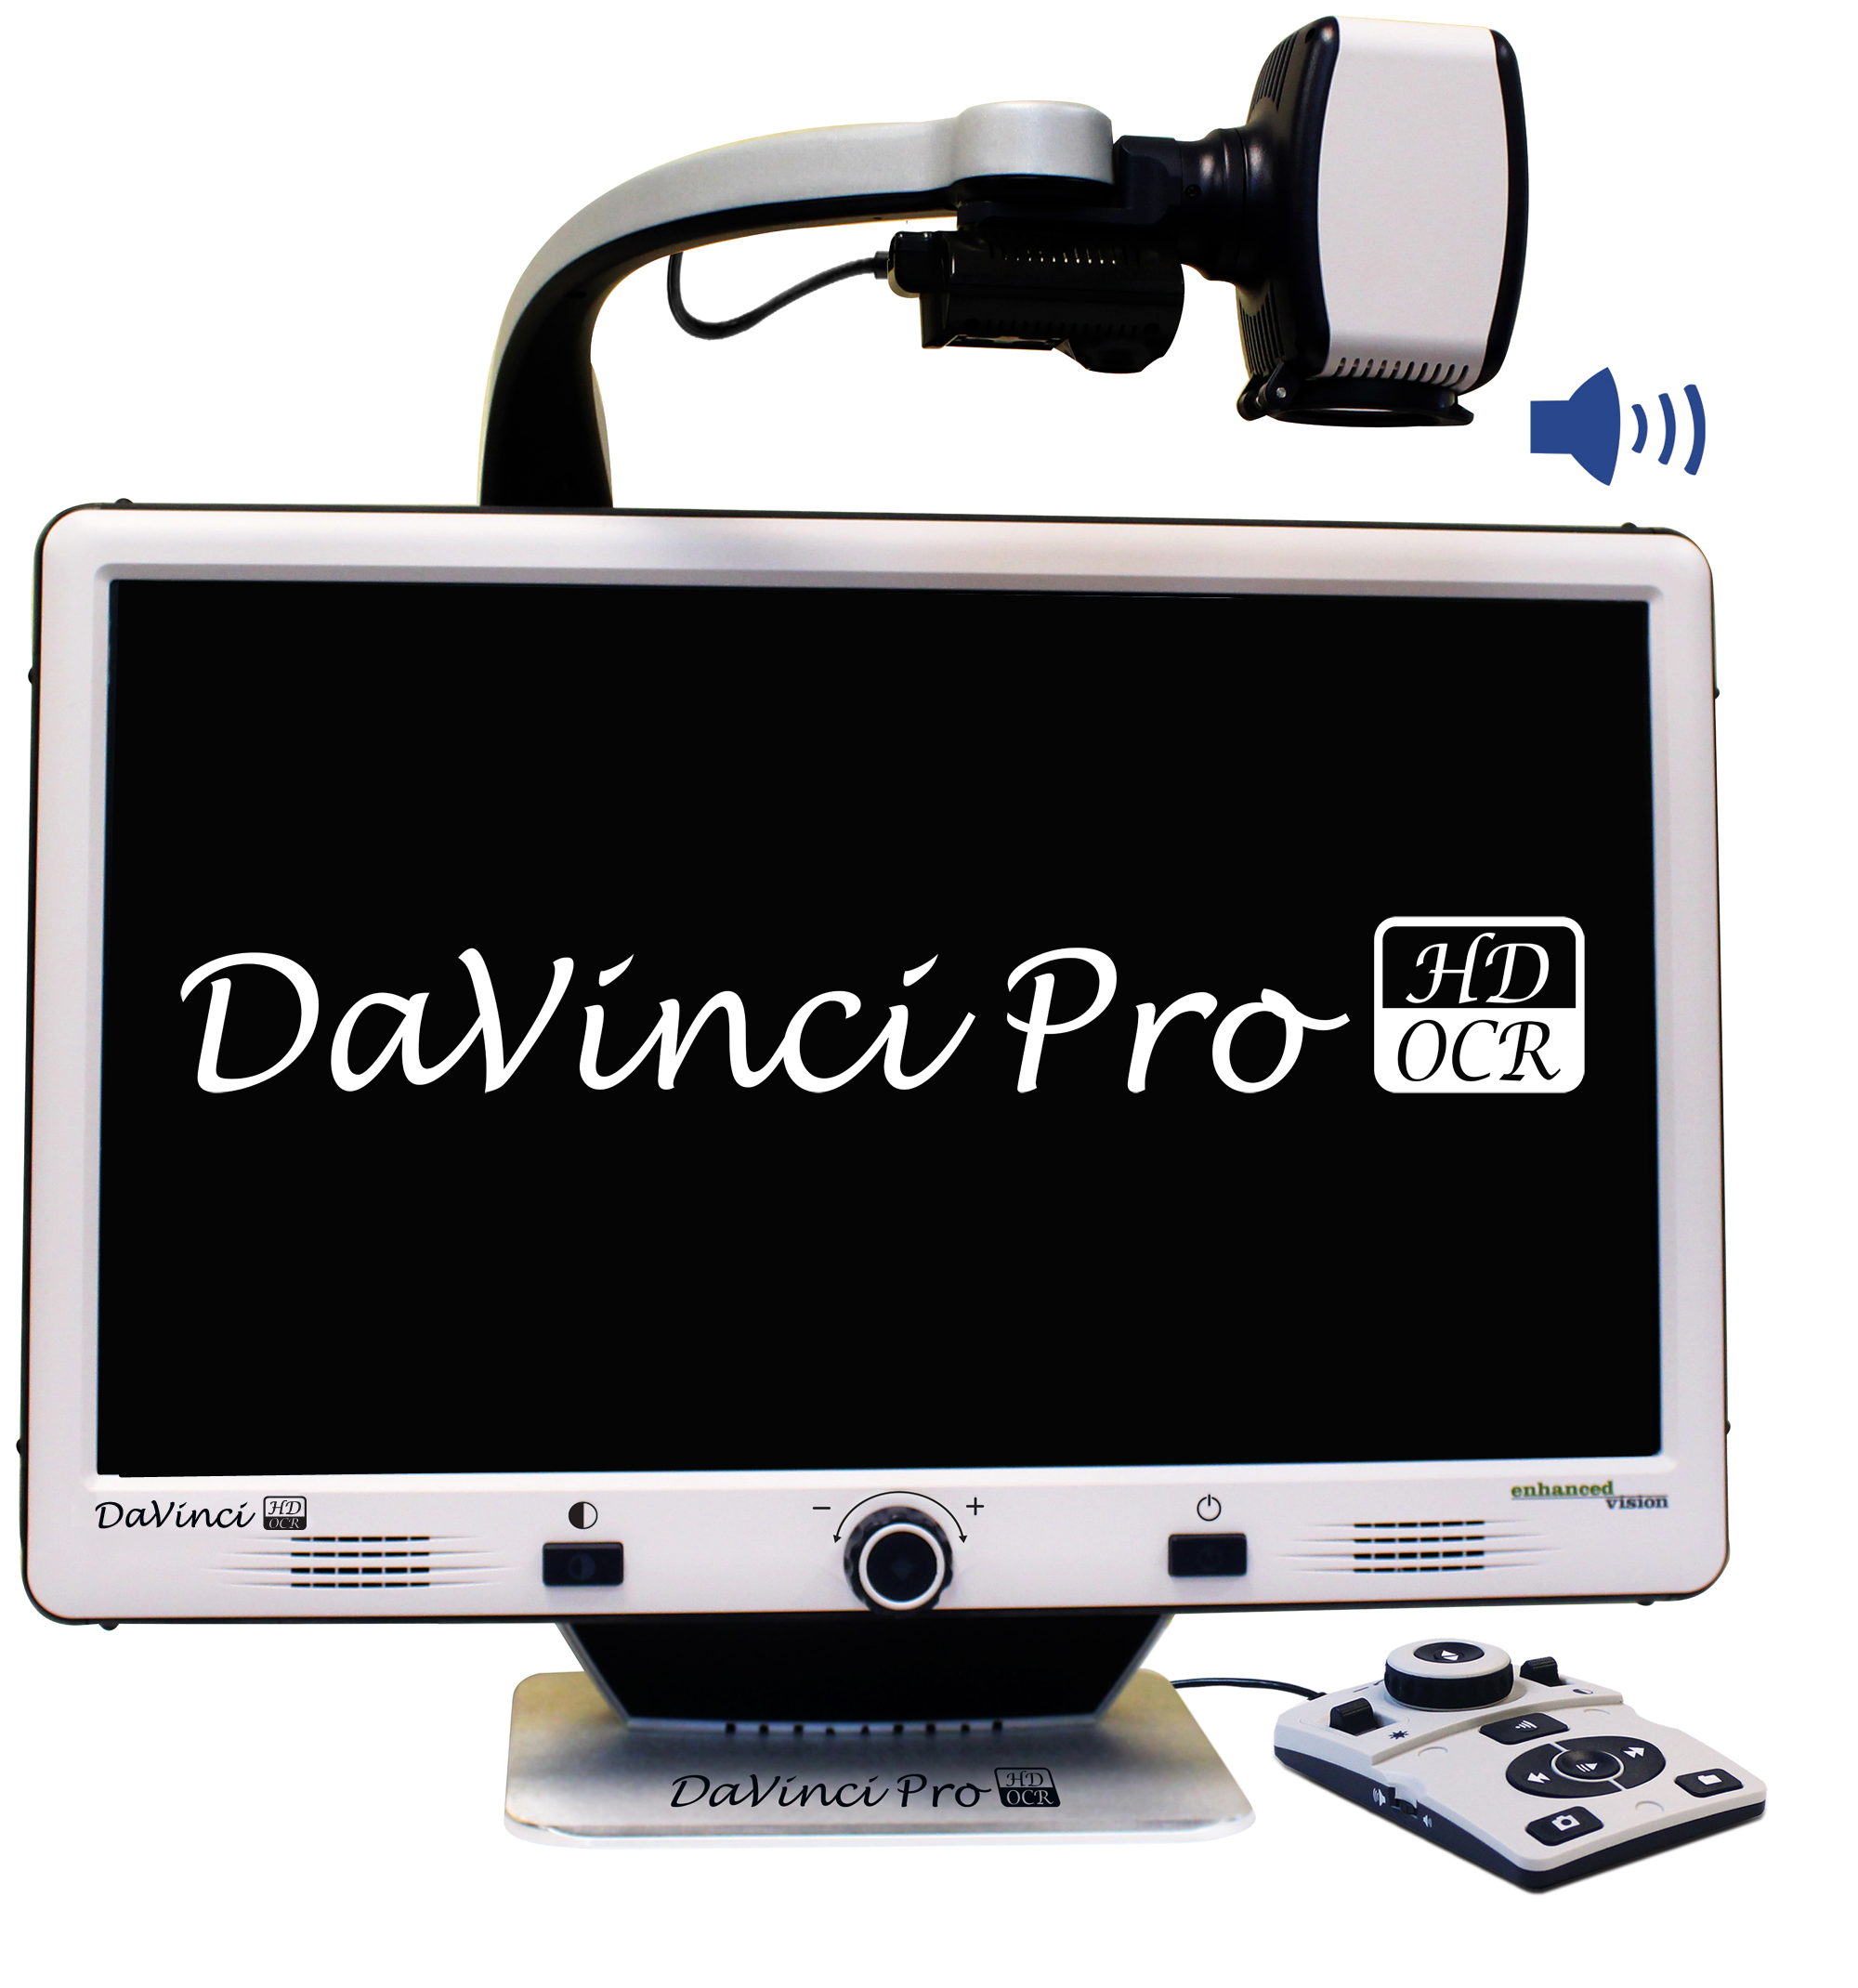 DaVinci Pro with logo on screen